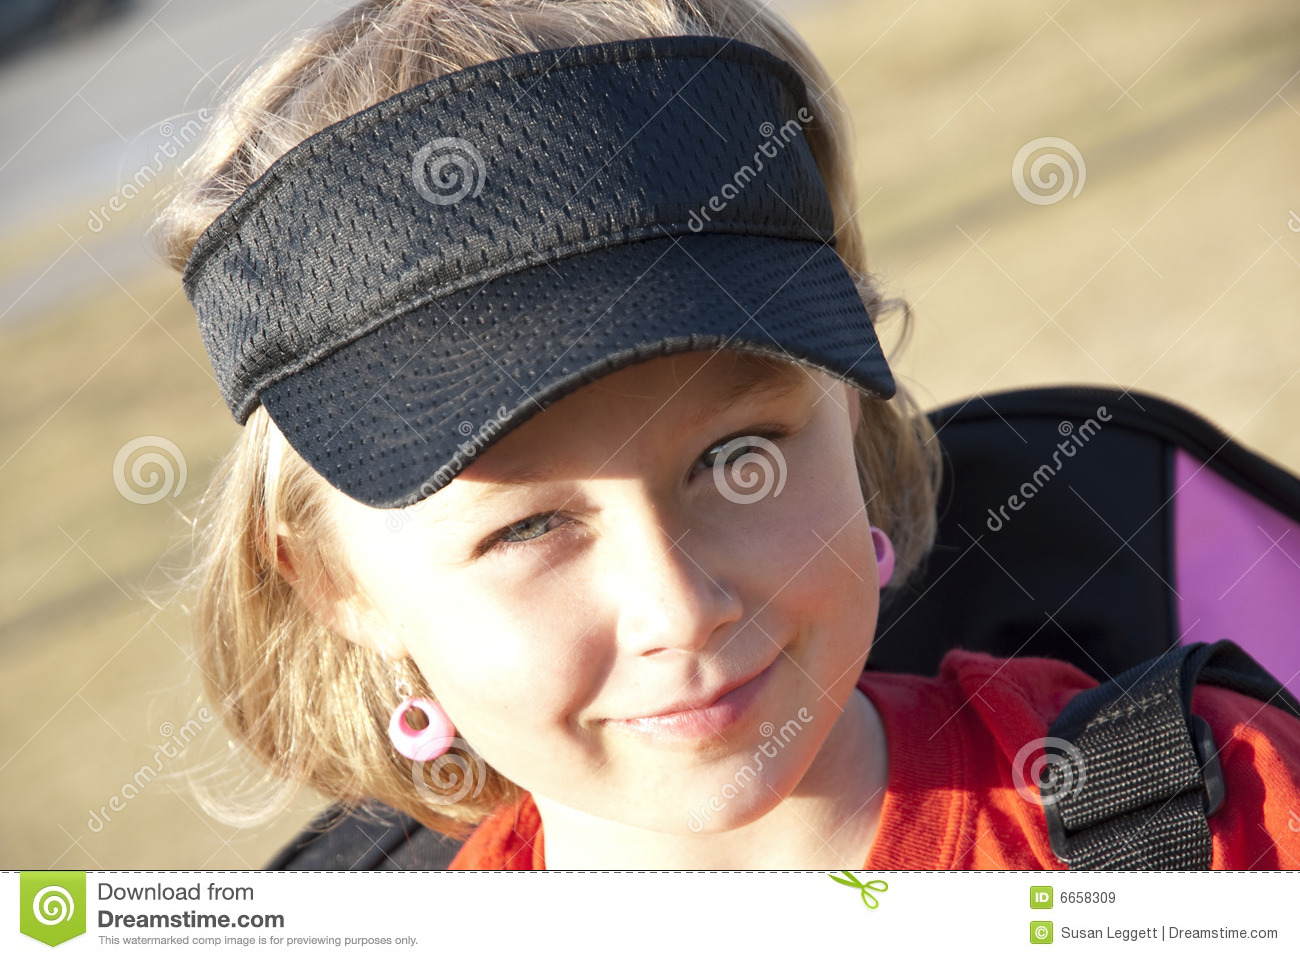 Cute Girl with Visor